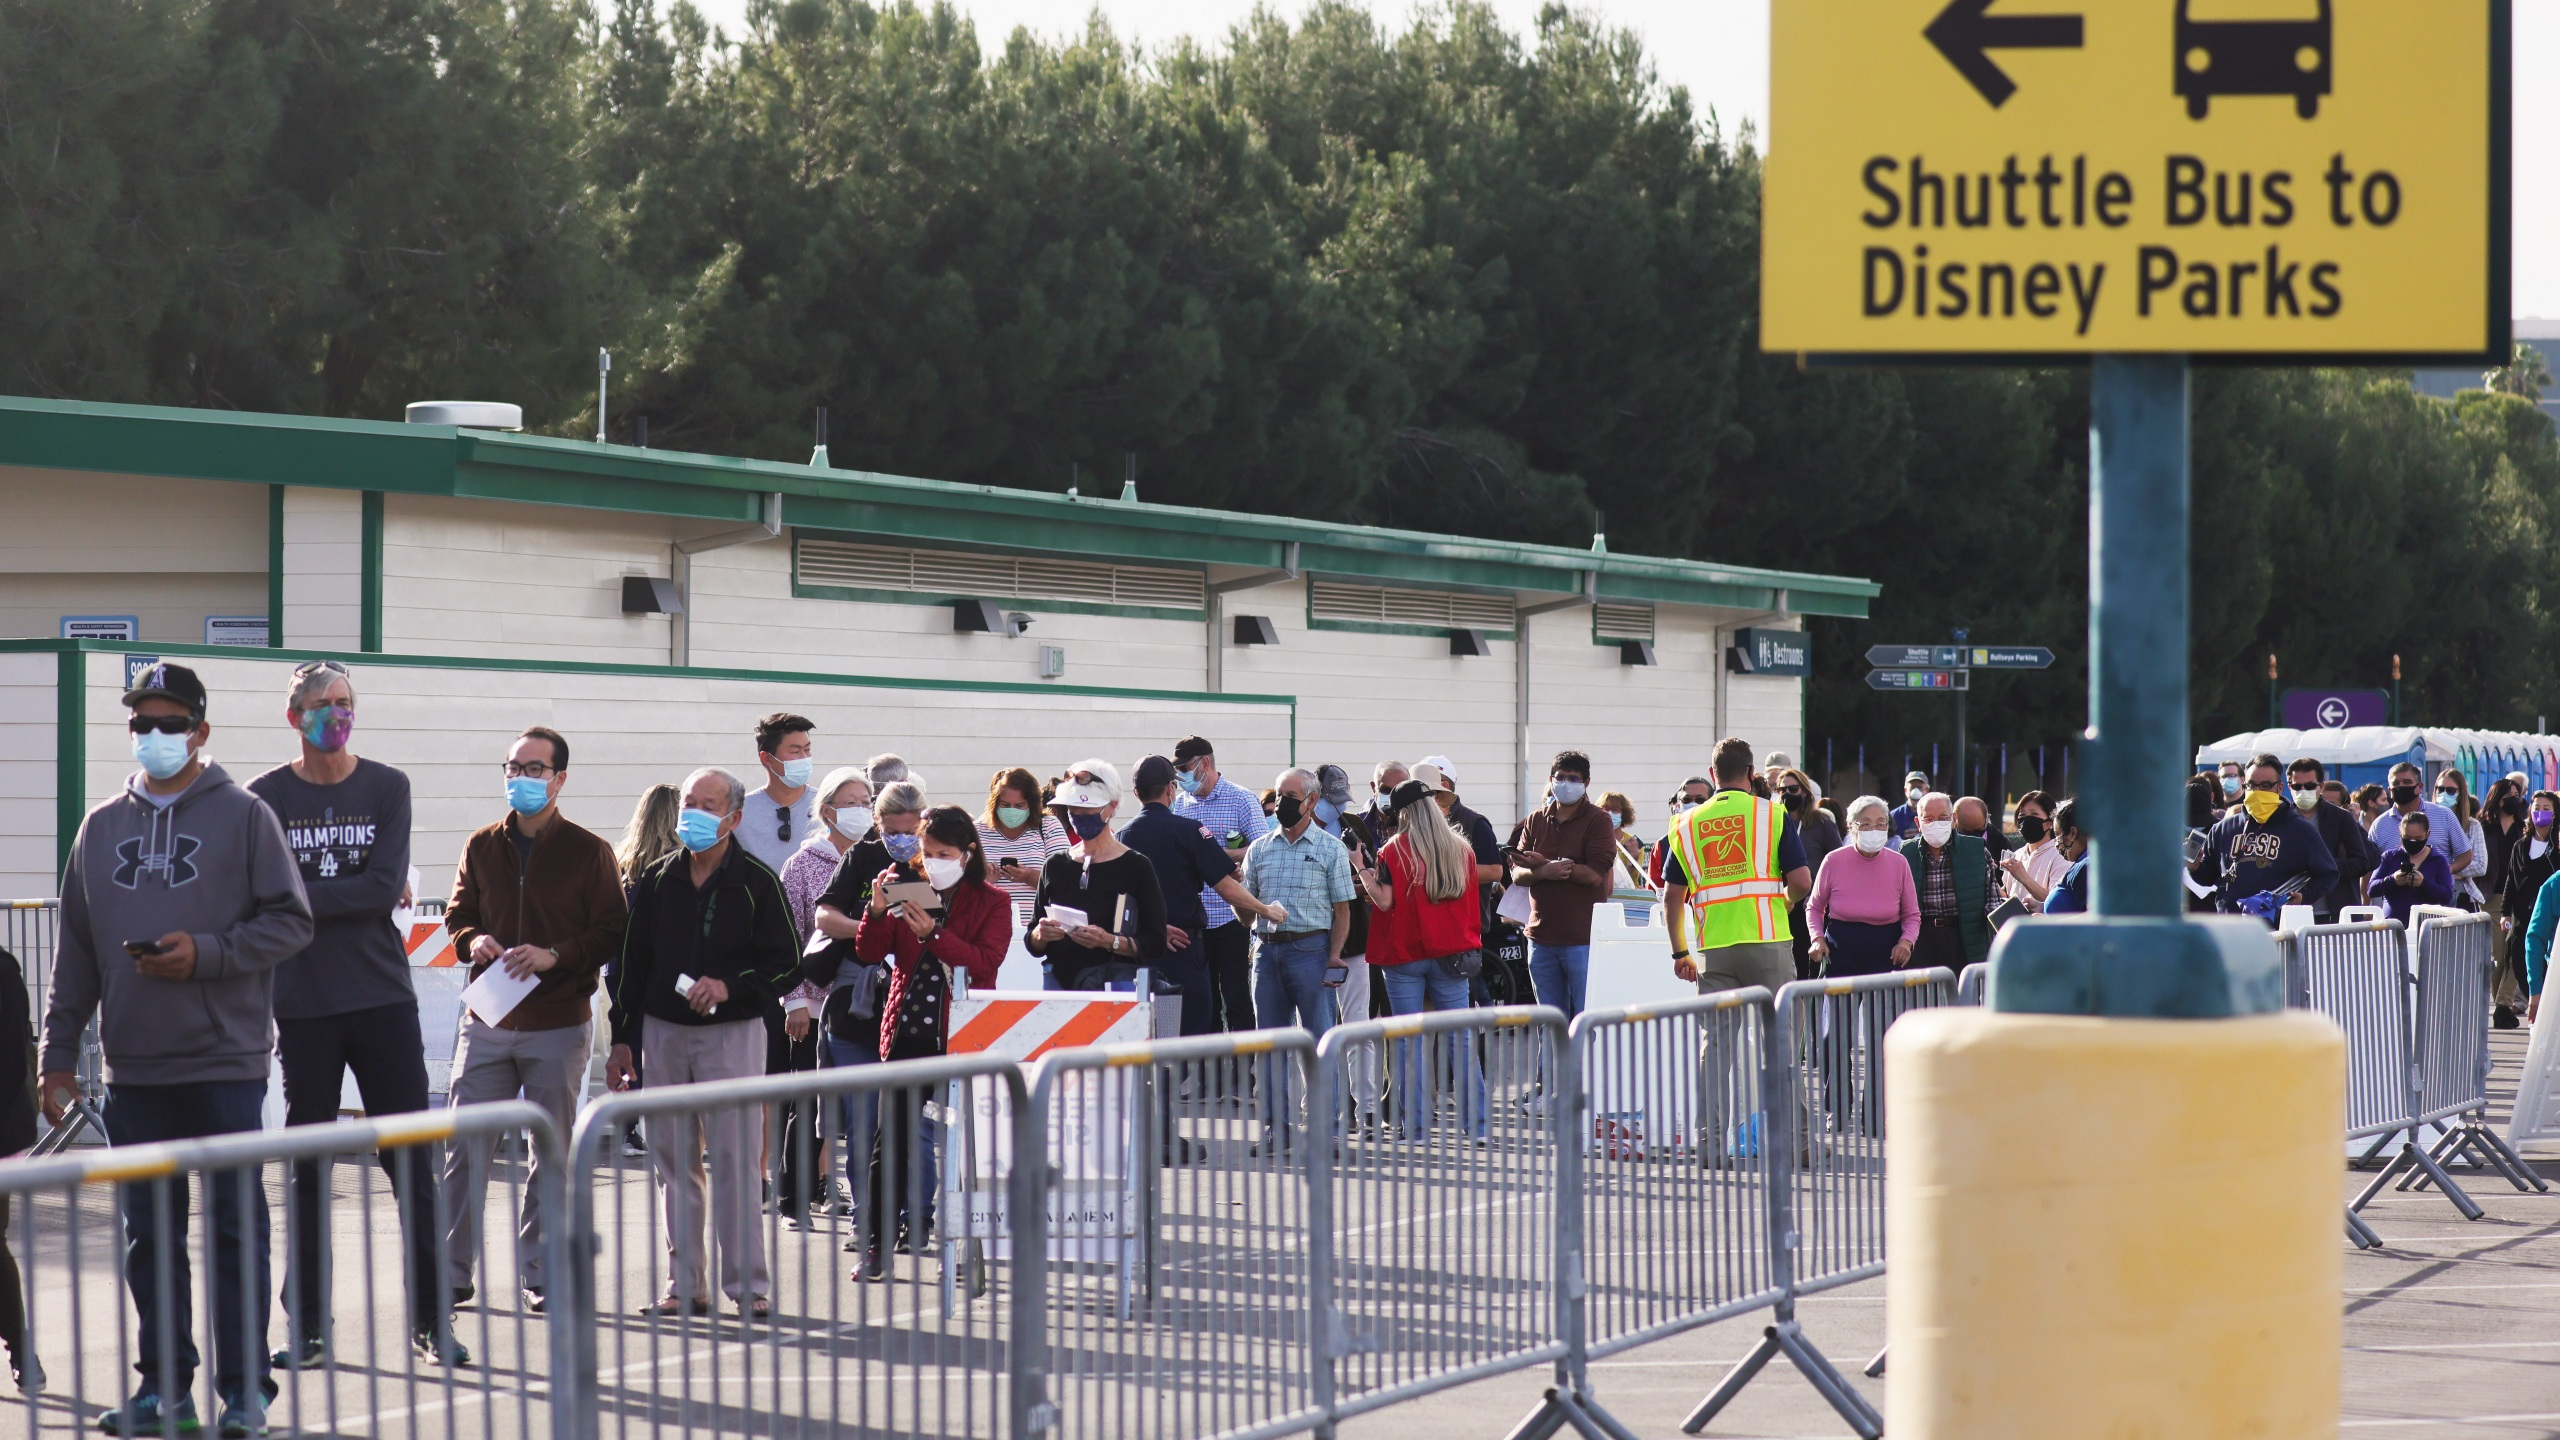 People wait in line to receive the COVID-19 vaccine at a mass vaccination site in a parking lot for Disneyland Resort on January 13, 2021 in Anaheim, California. (Photo by Mario Tama/Getty Images)